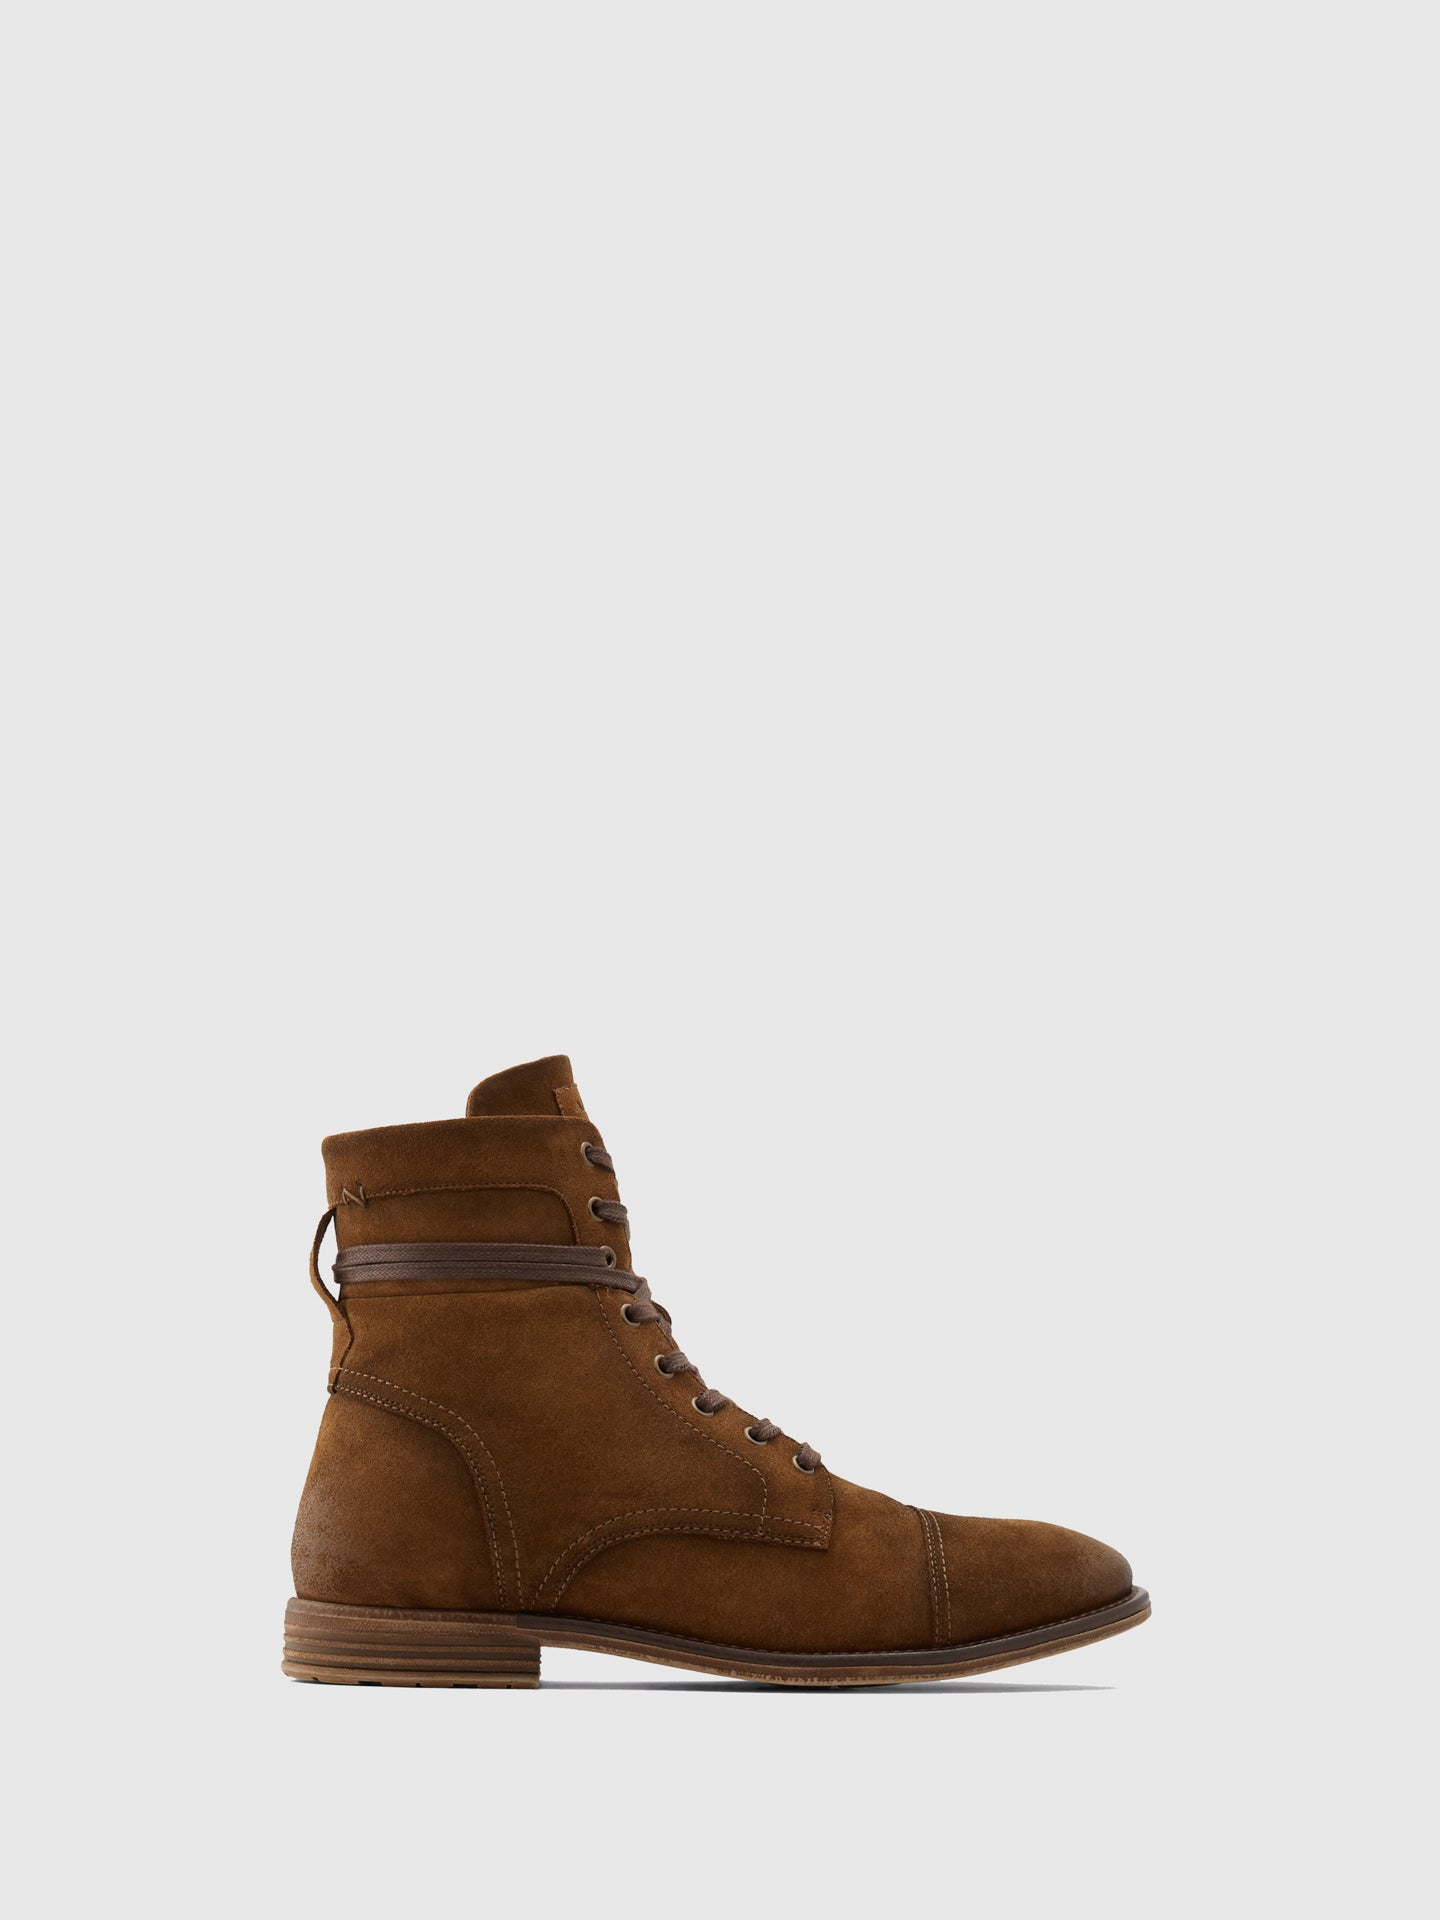 Aldo Tan Zip Up Boots